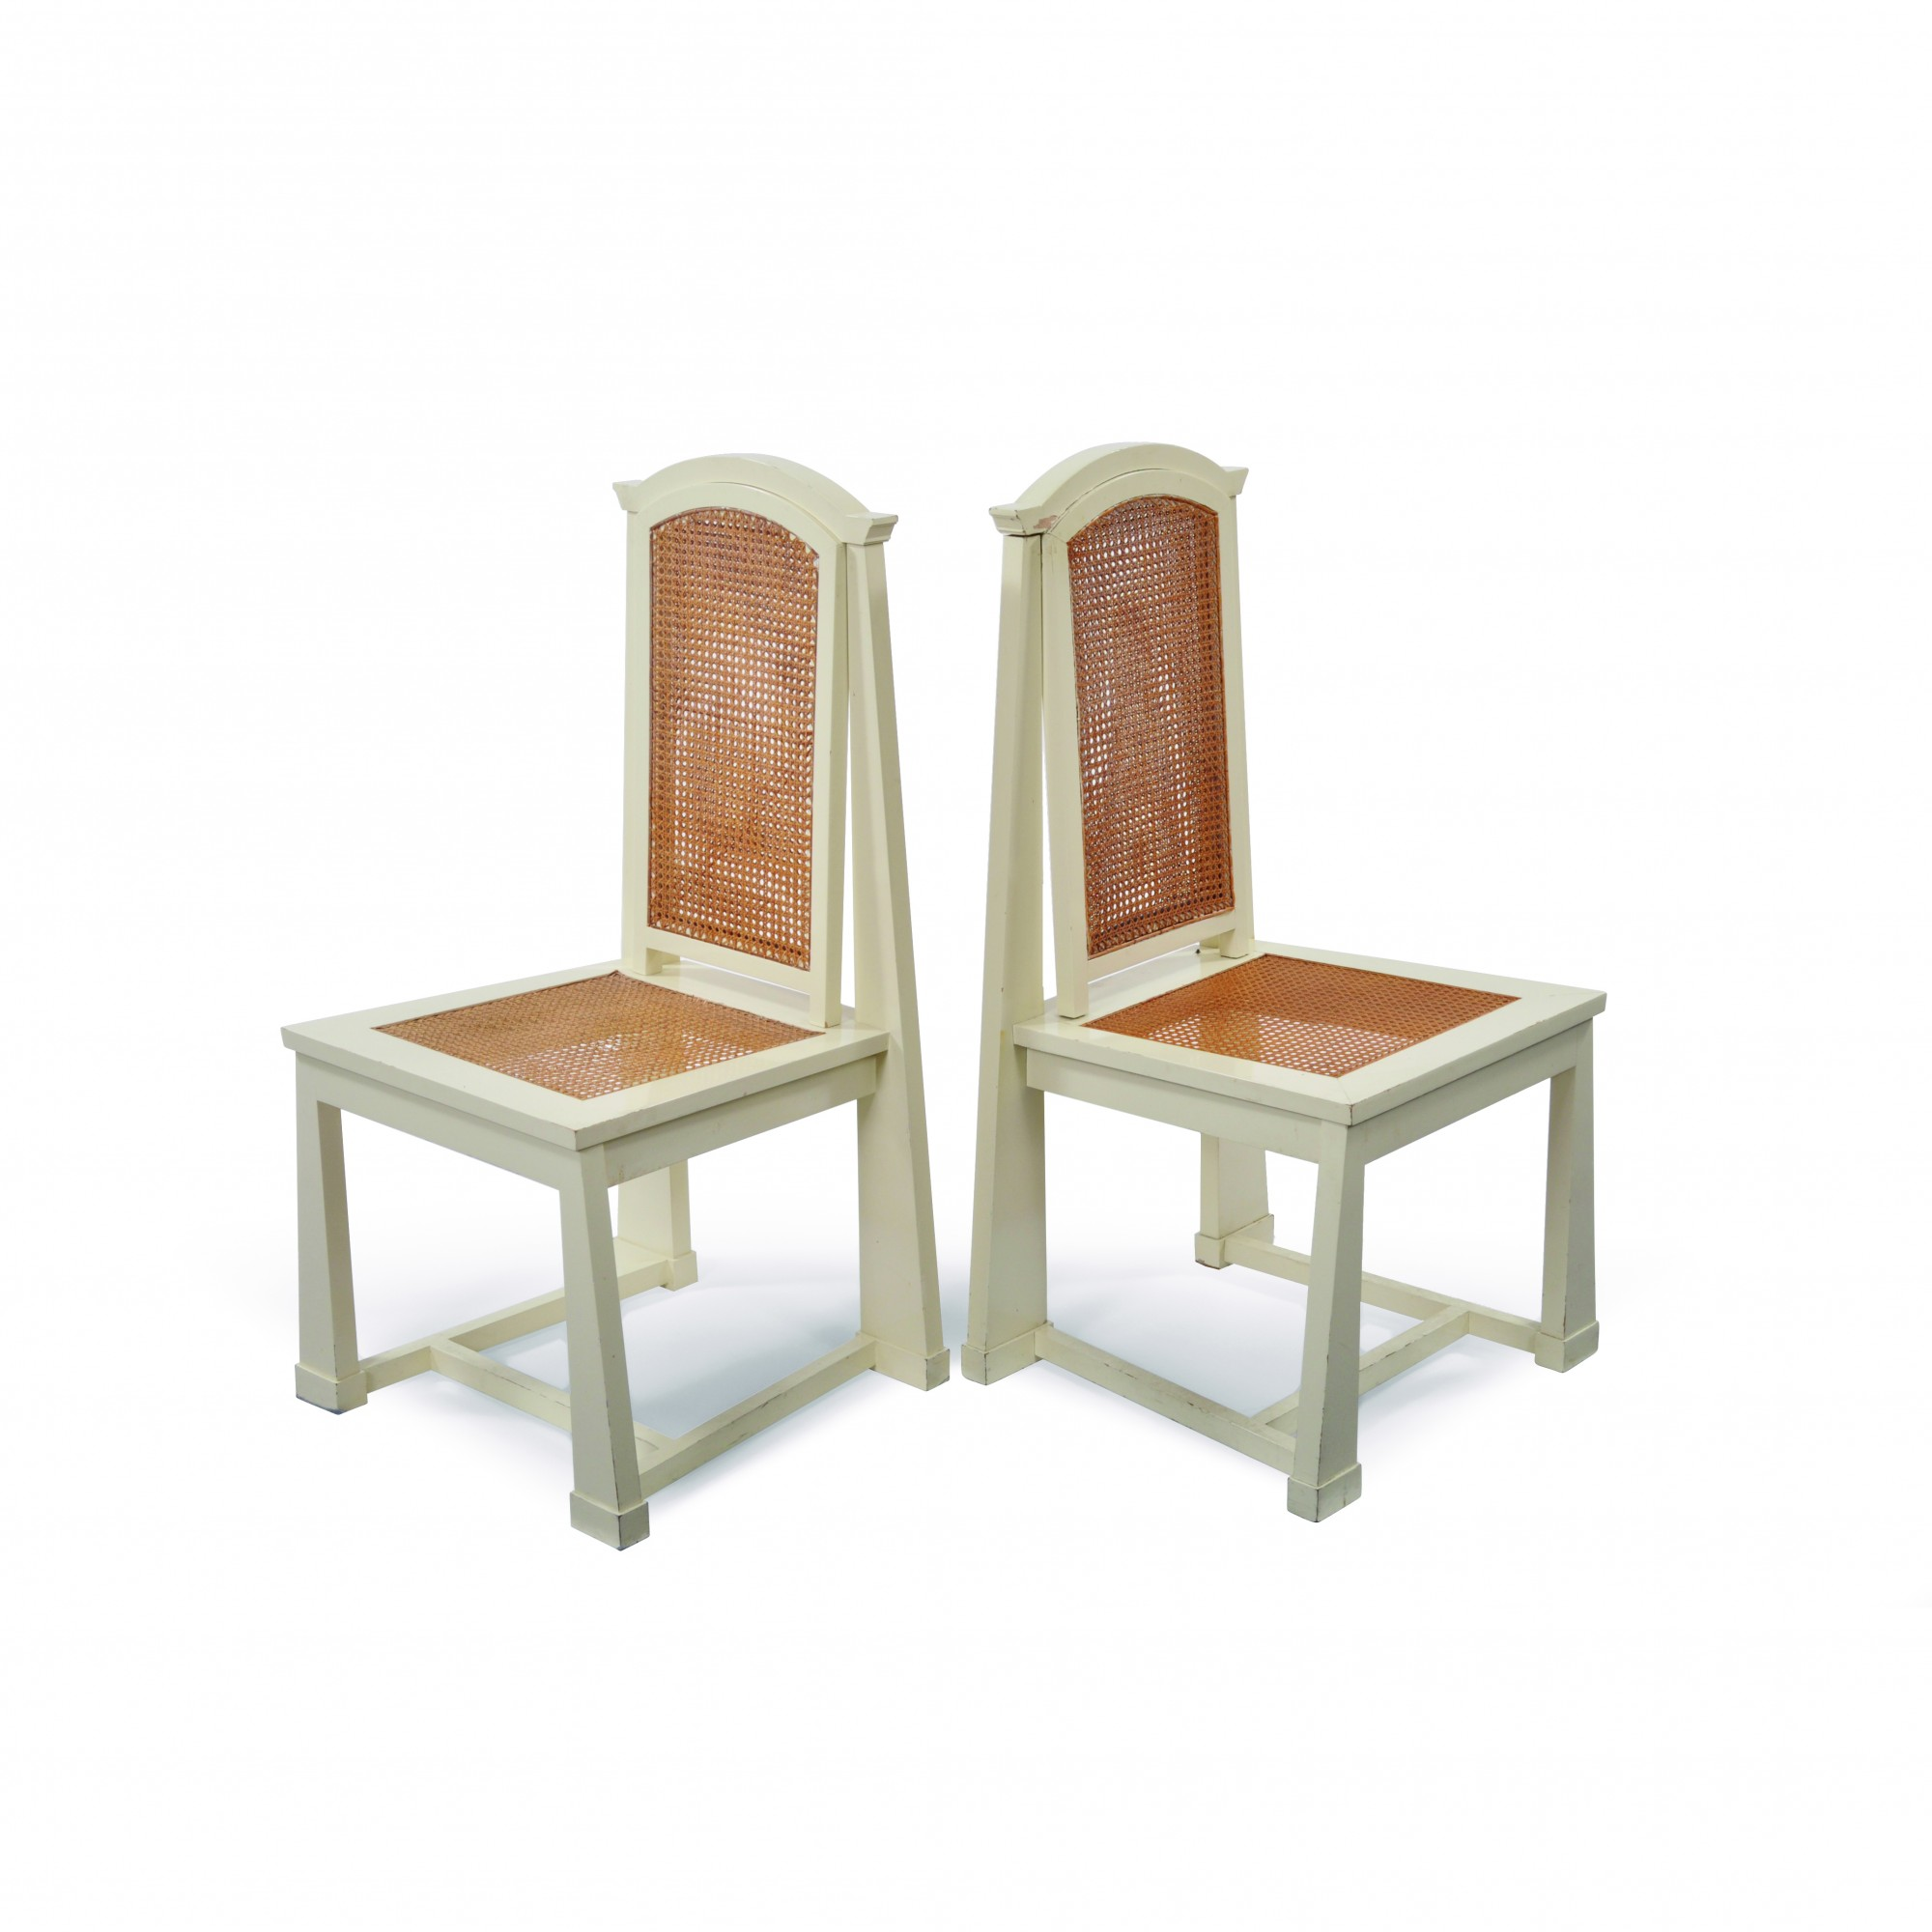 George Washington Maher Chairs Set of Four